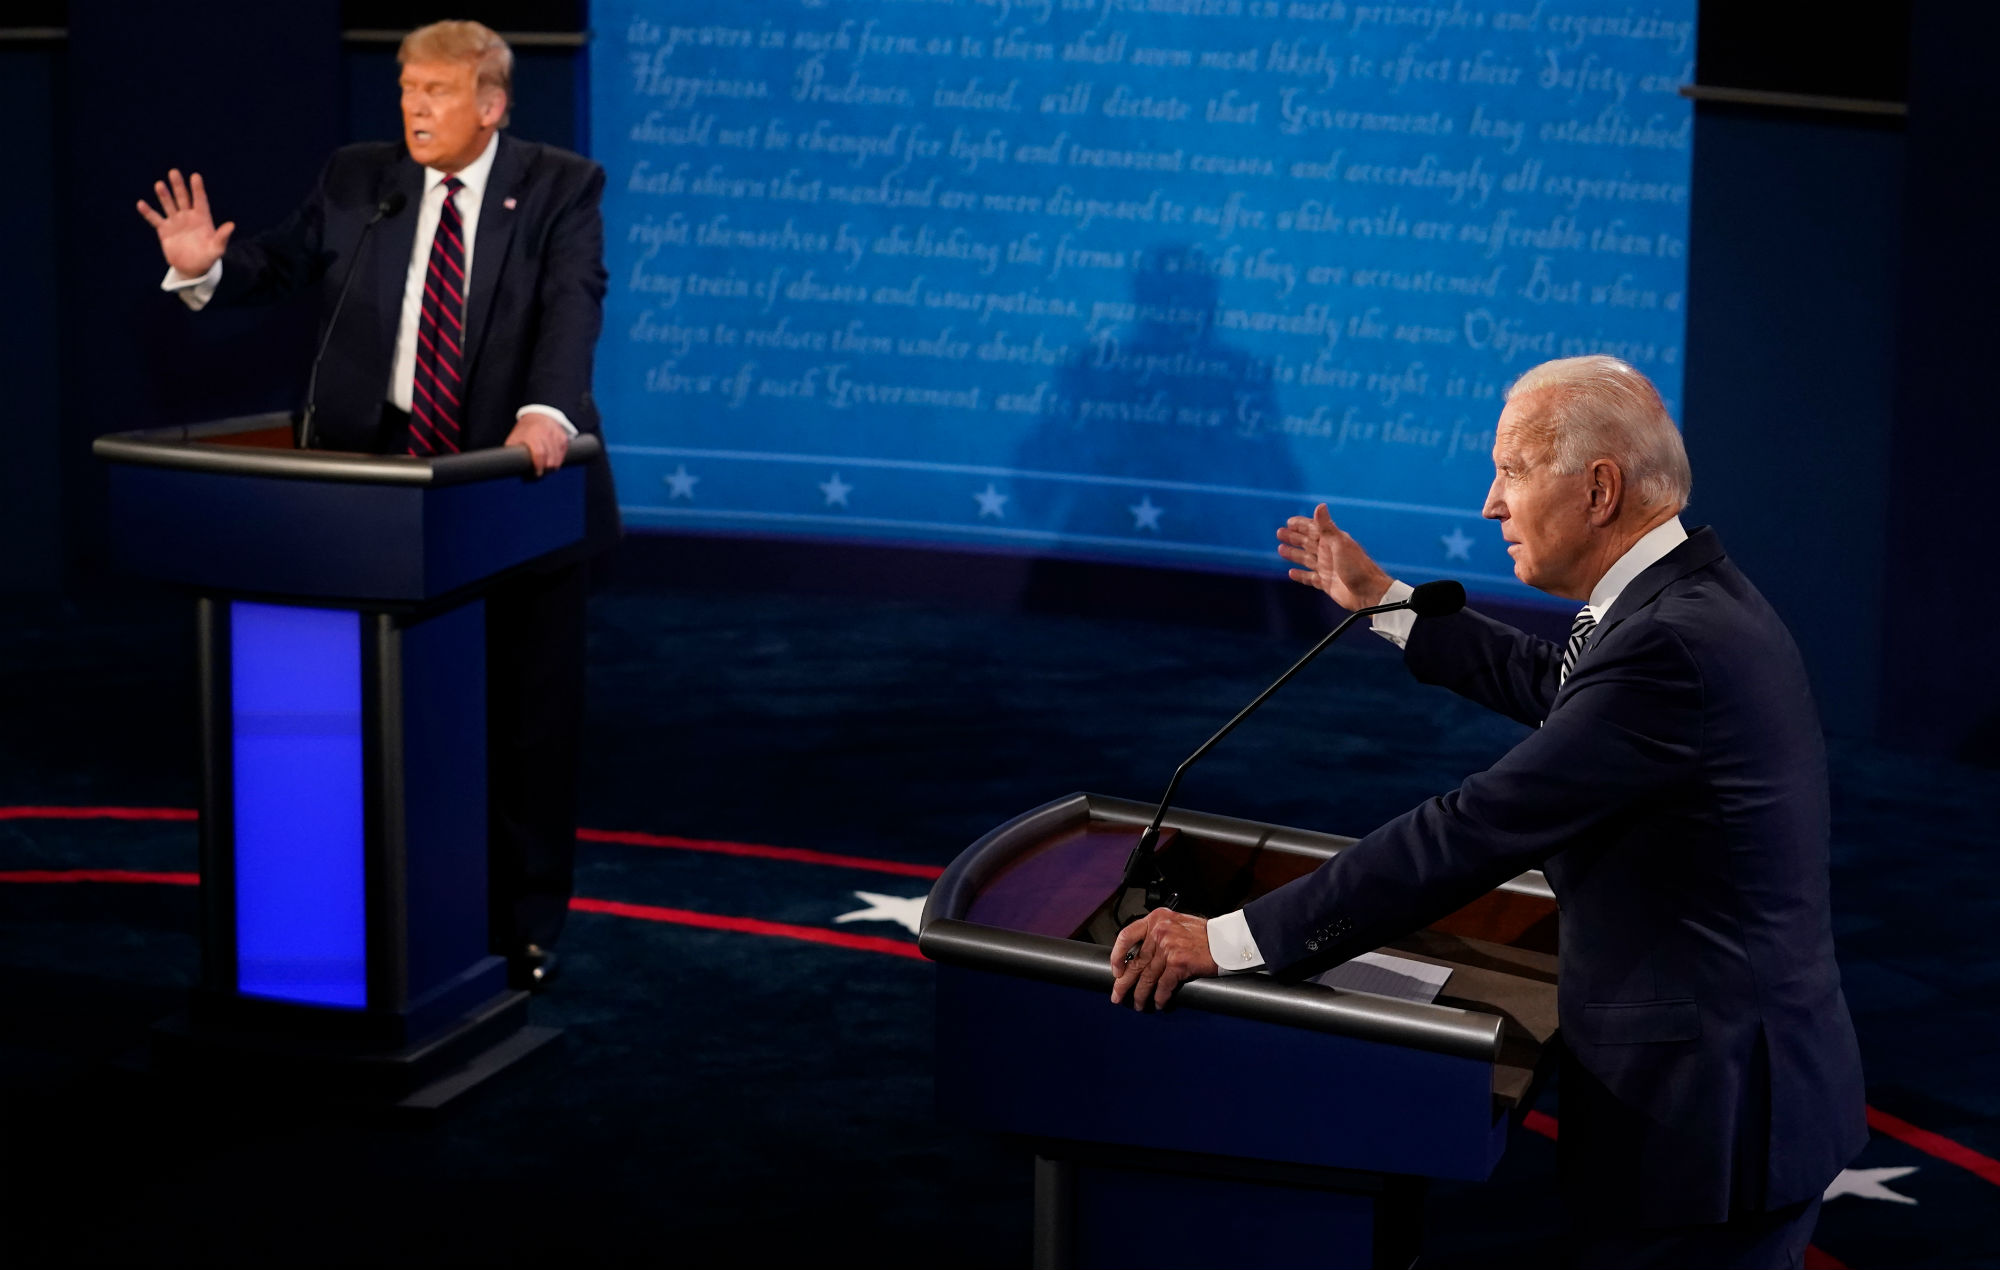 Cardi B and Chance The Rapper lead reactions to Trump and Biden's first presidential debate